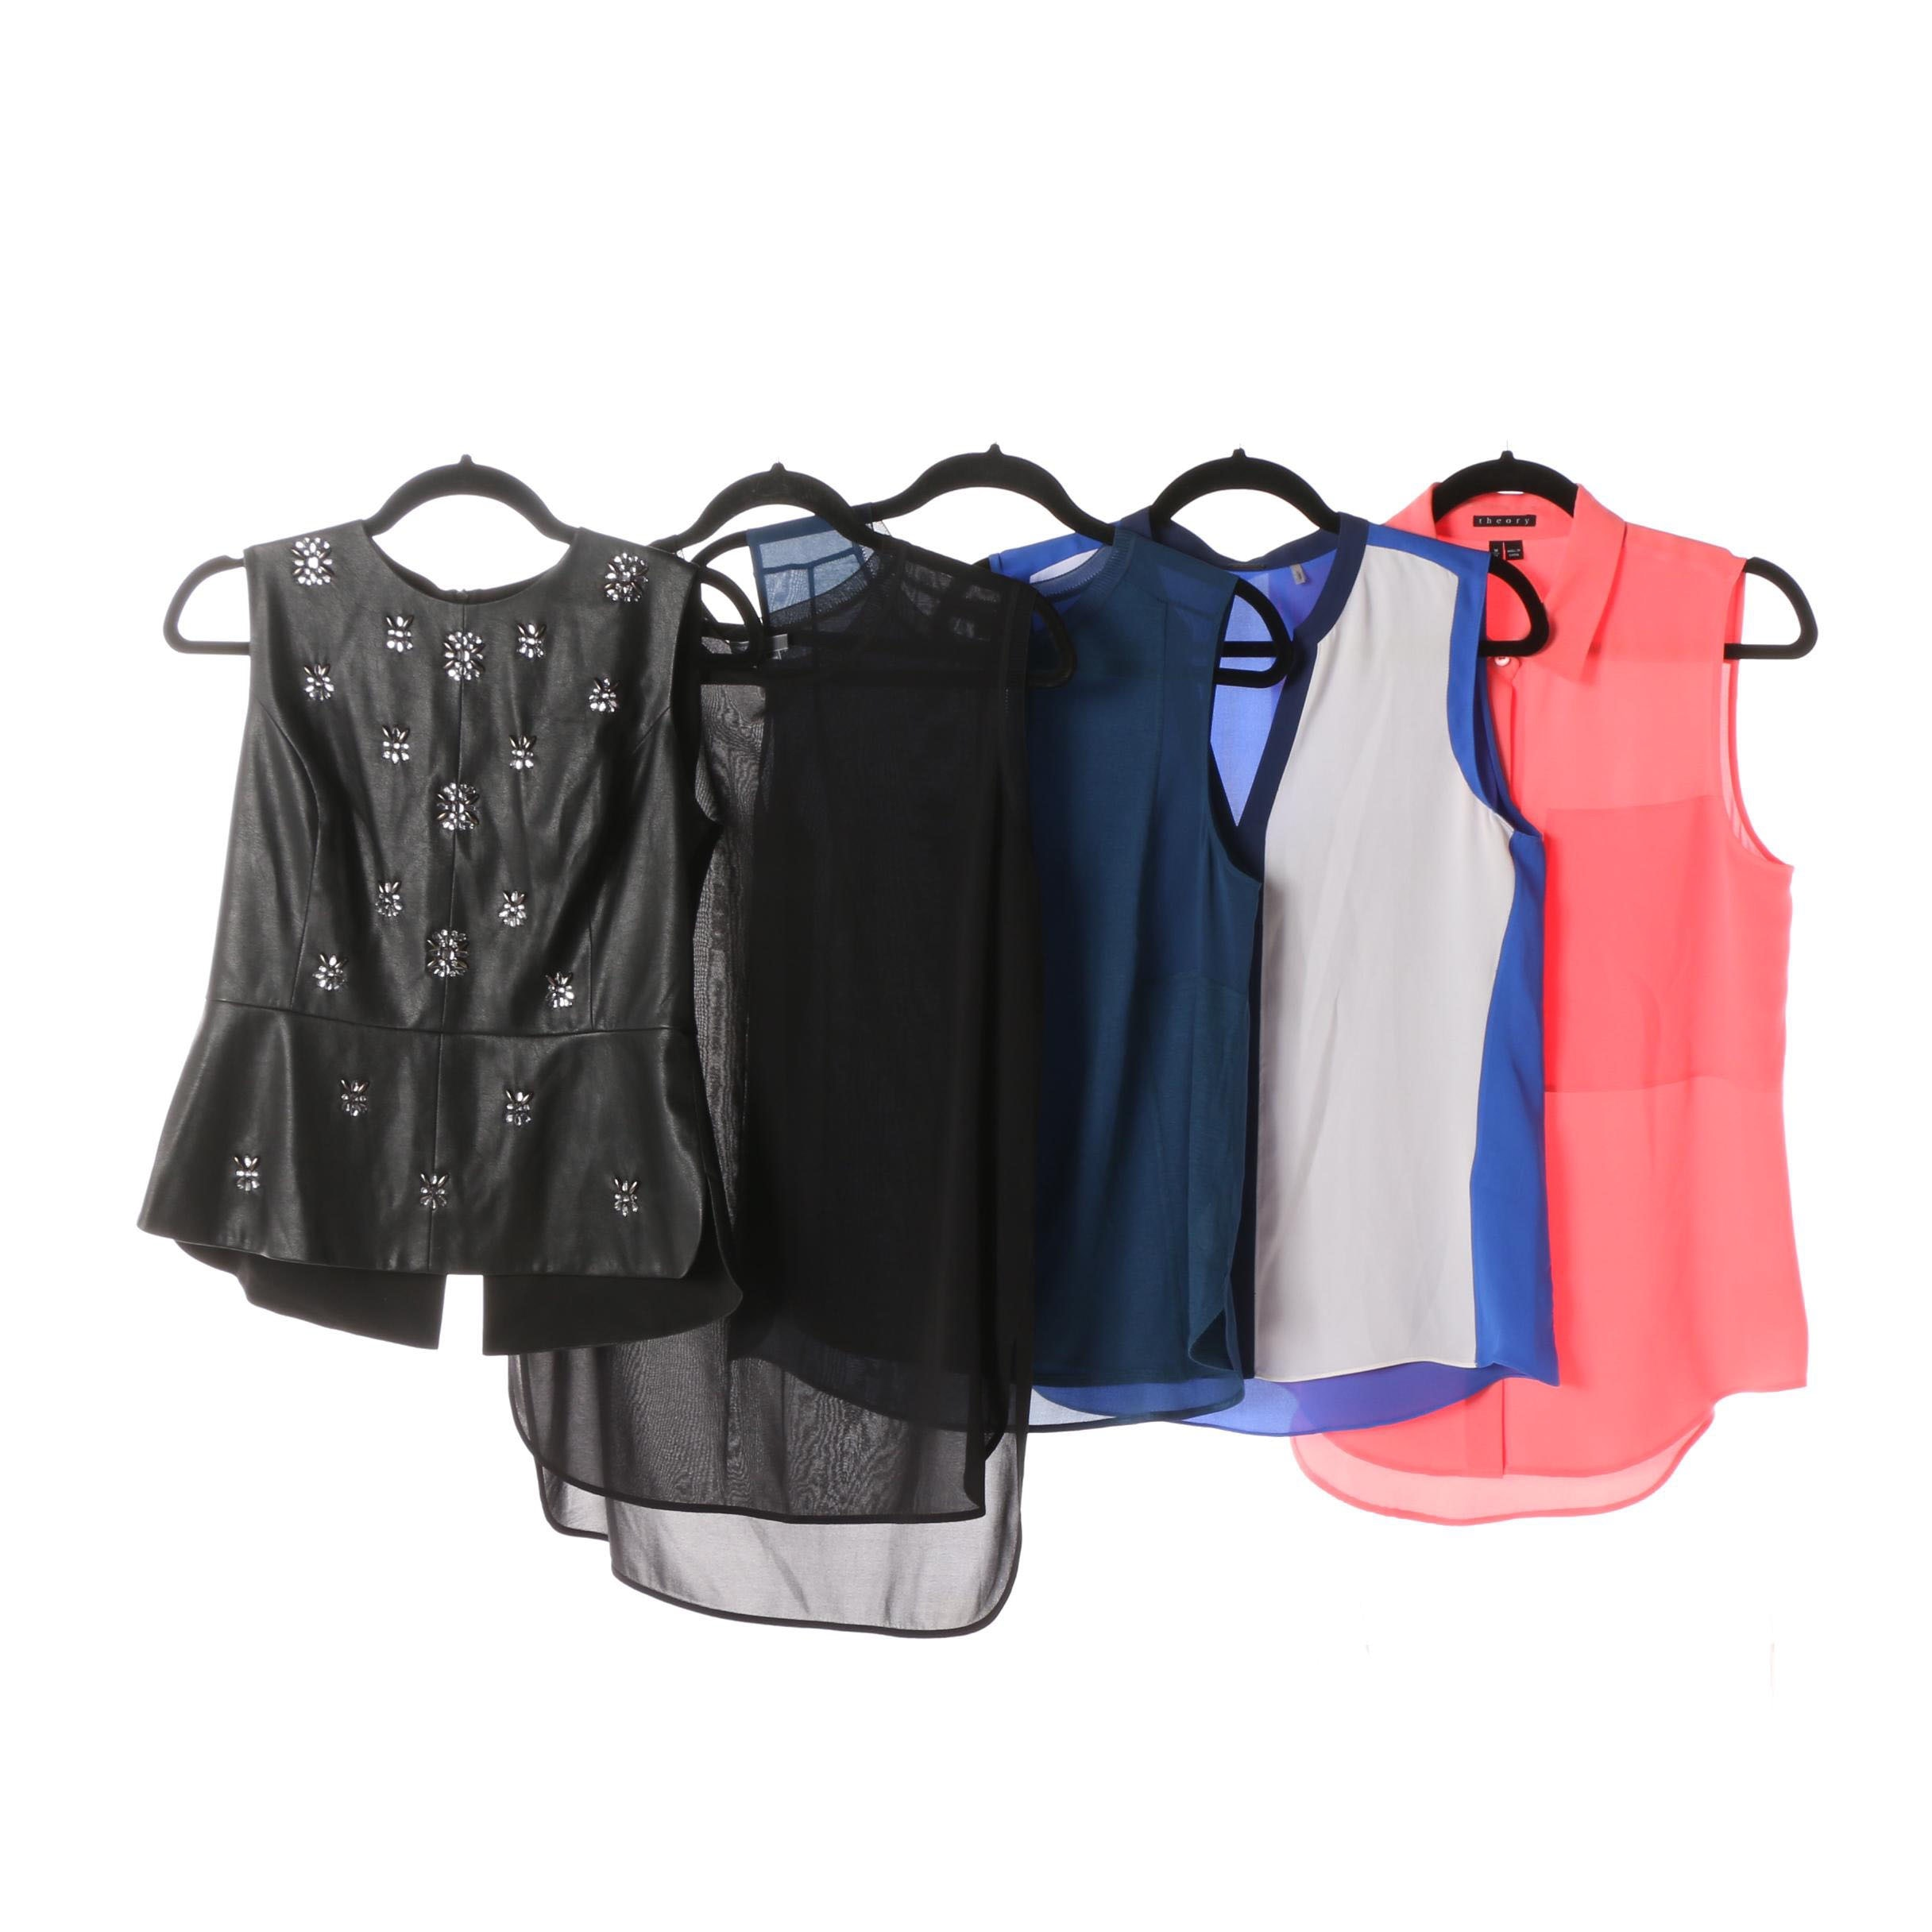 Sleeveless Tops Including Leather BCBG Maz Azria, Elie Tahari, Theory and Vince